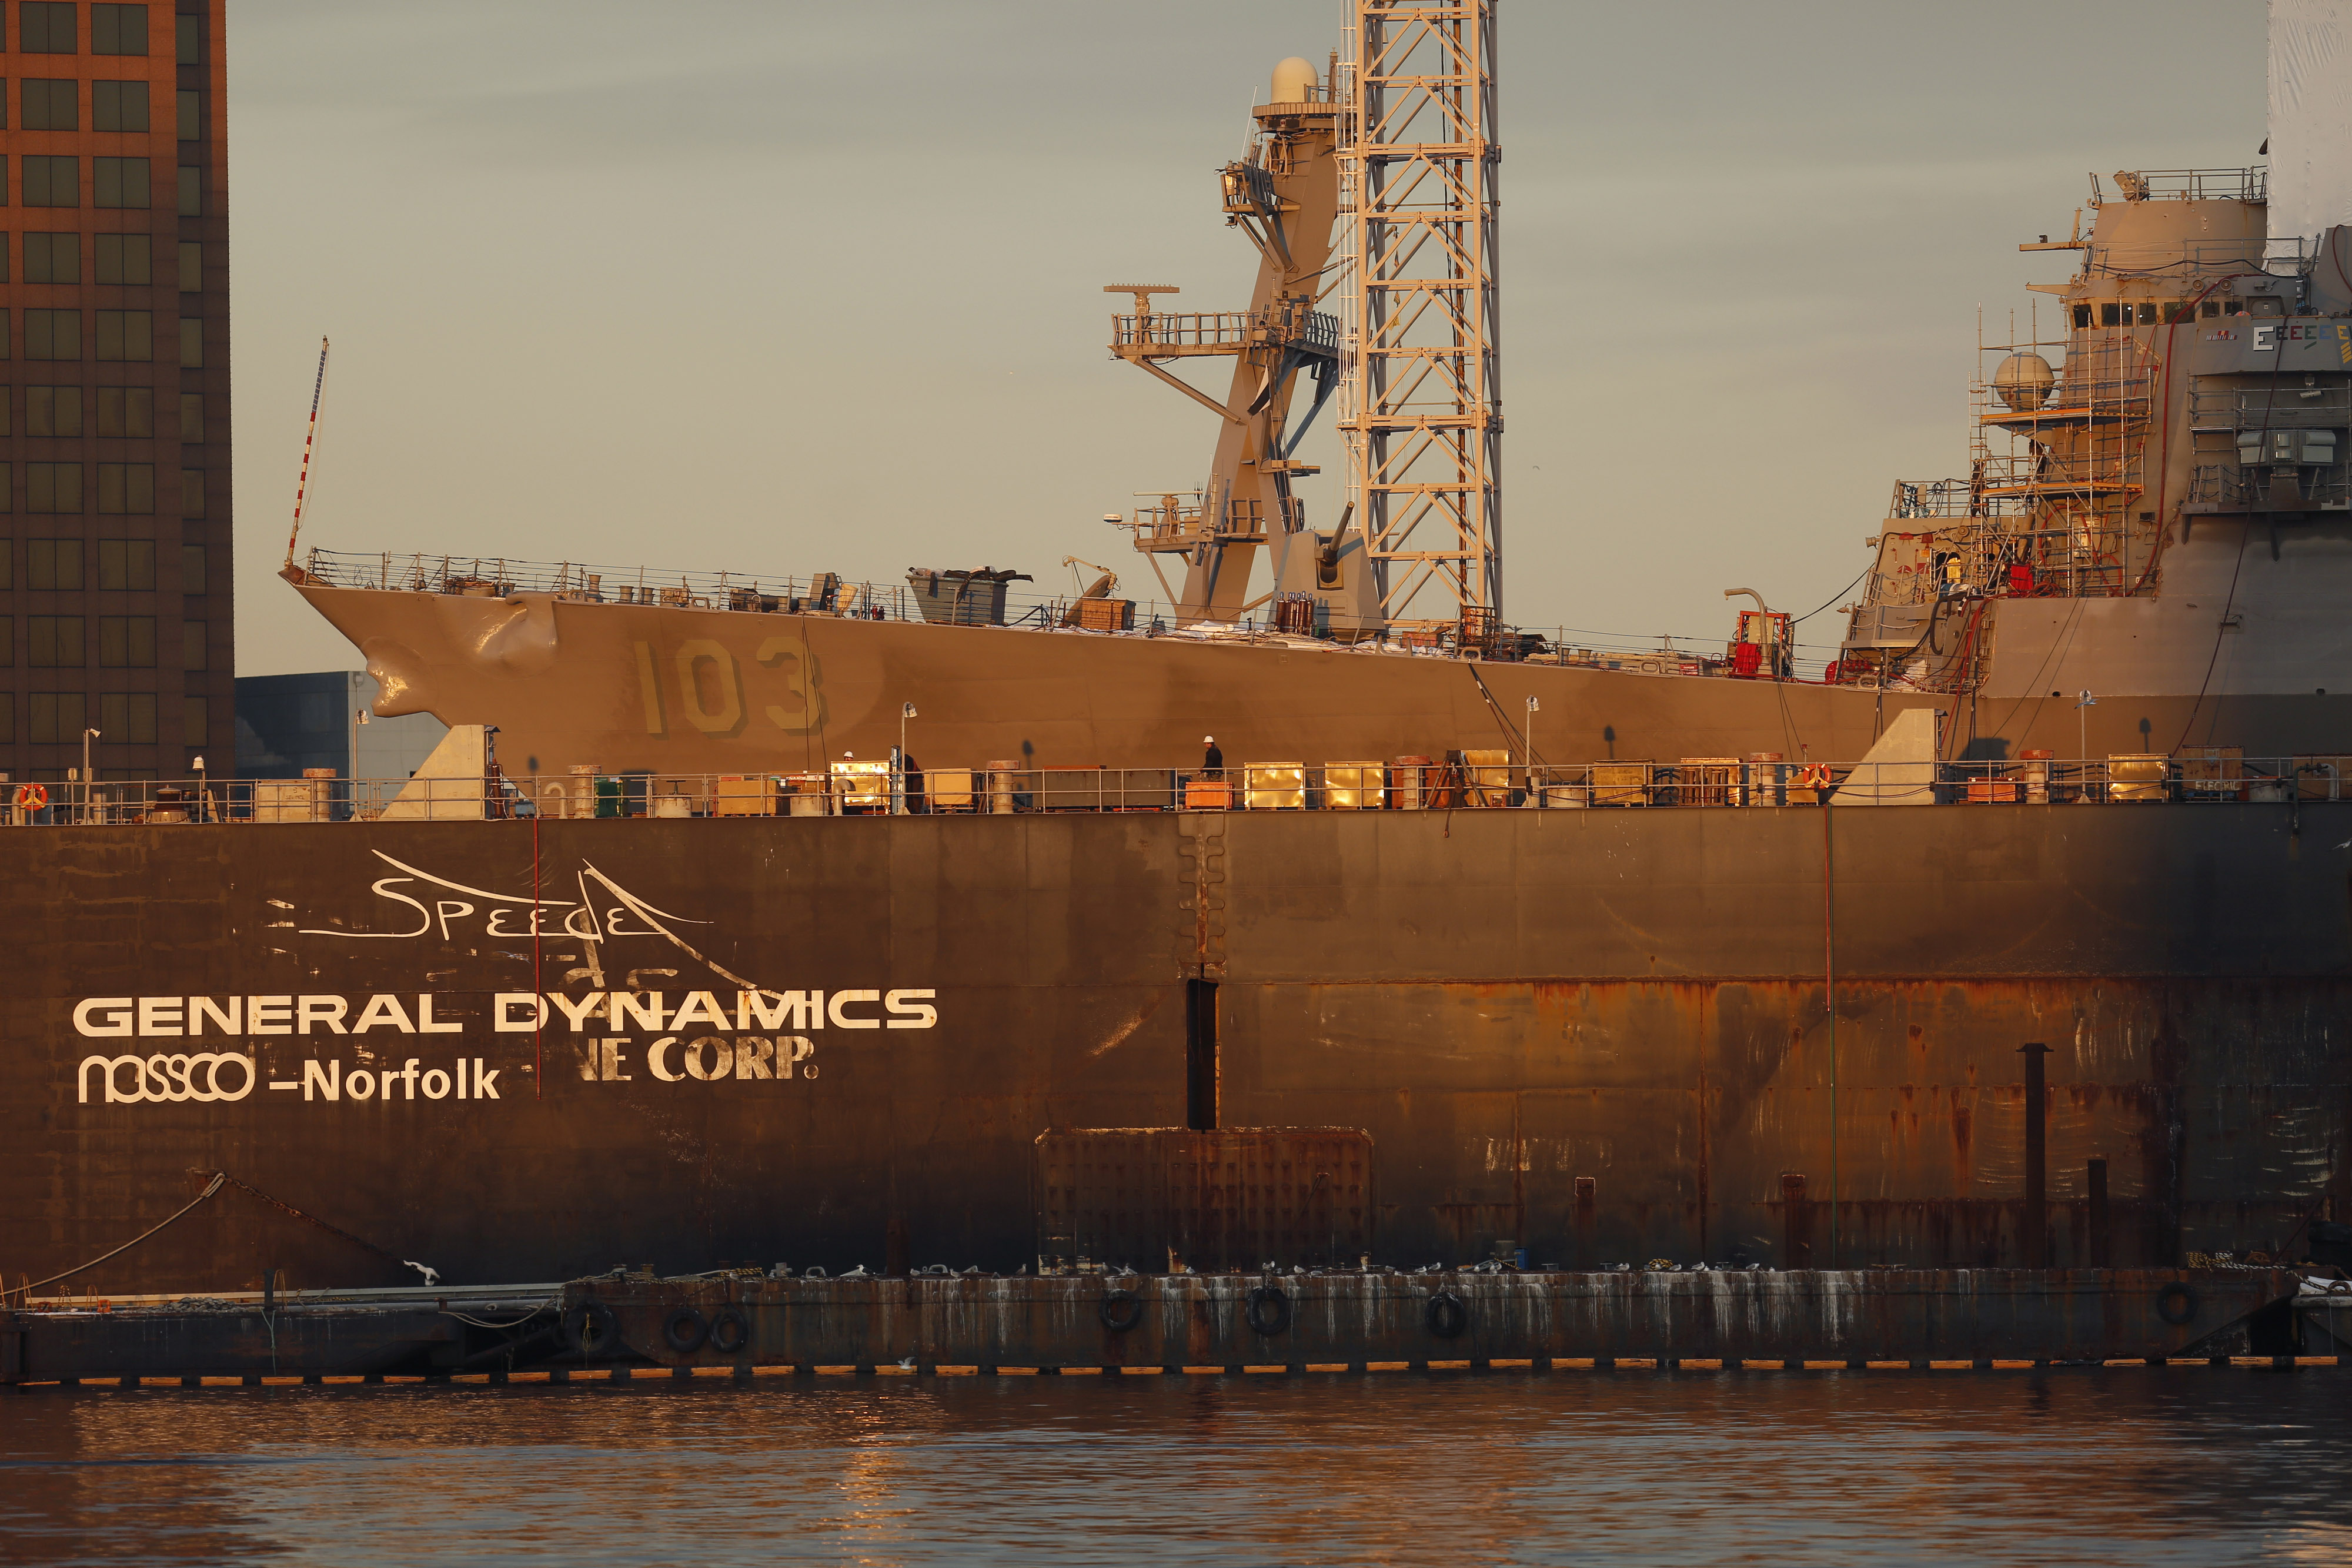 Defense contractor General Dynamics bets on government IT work with